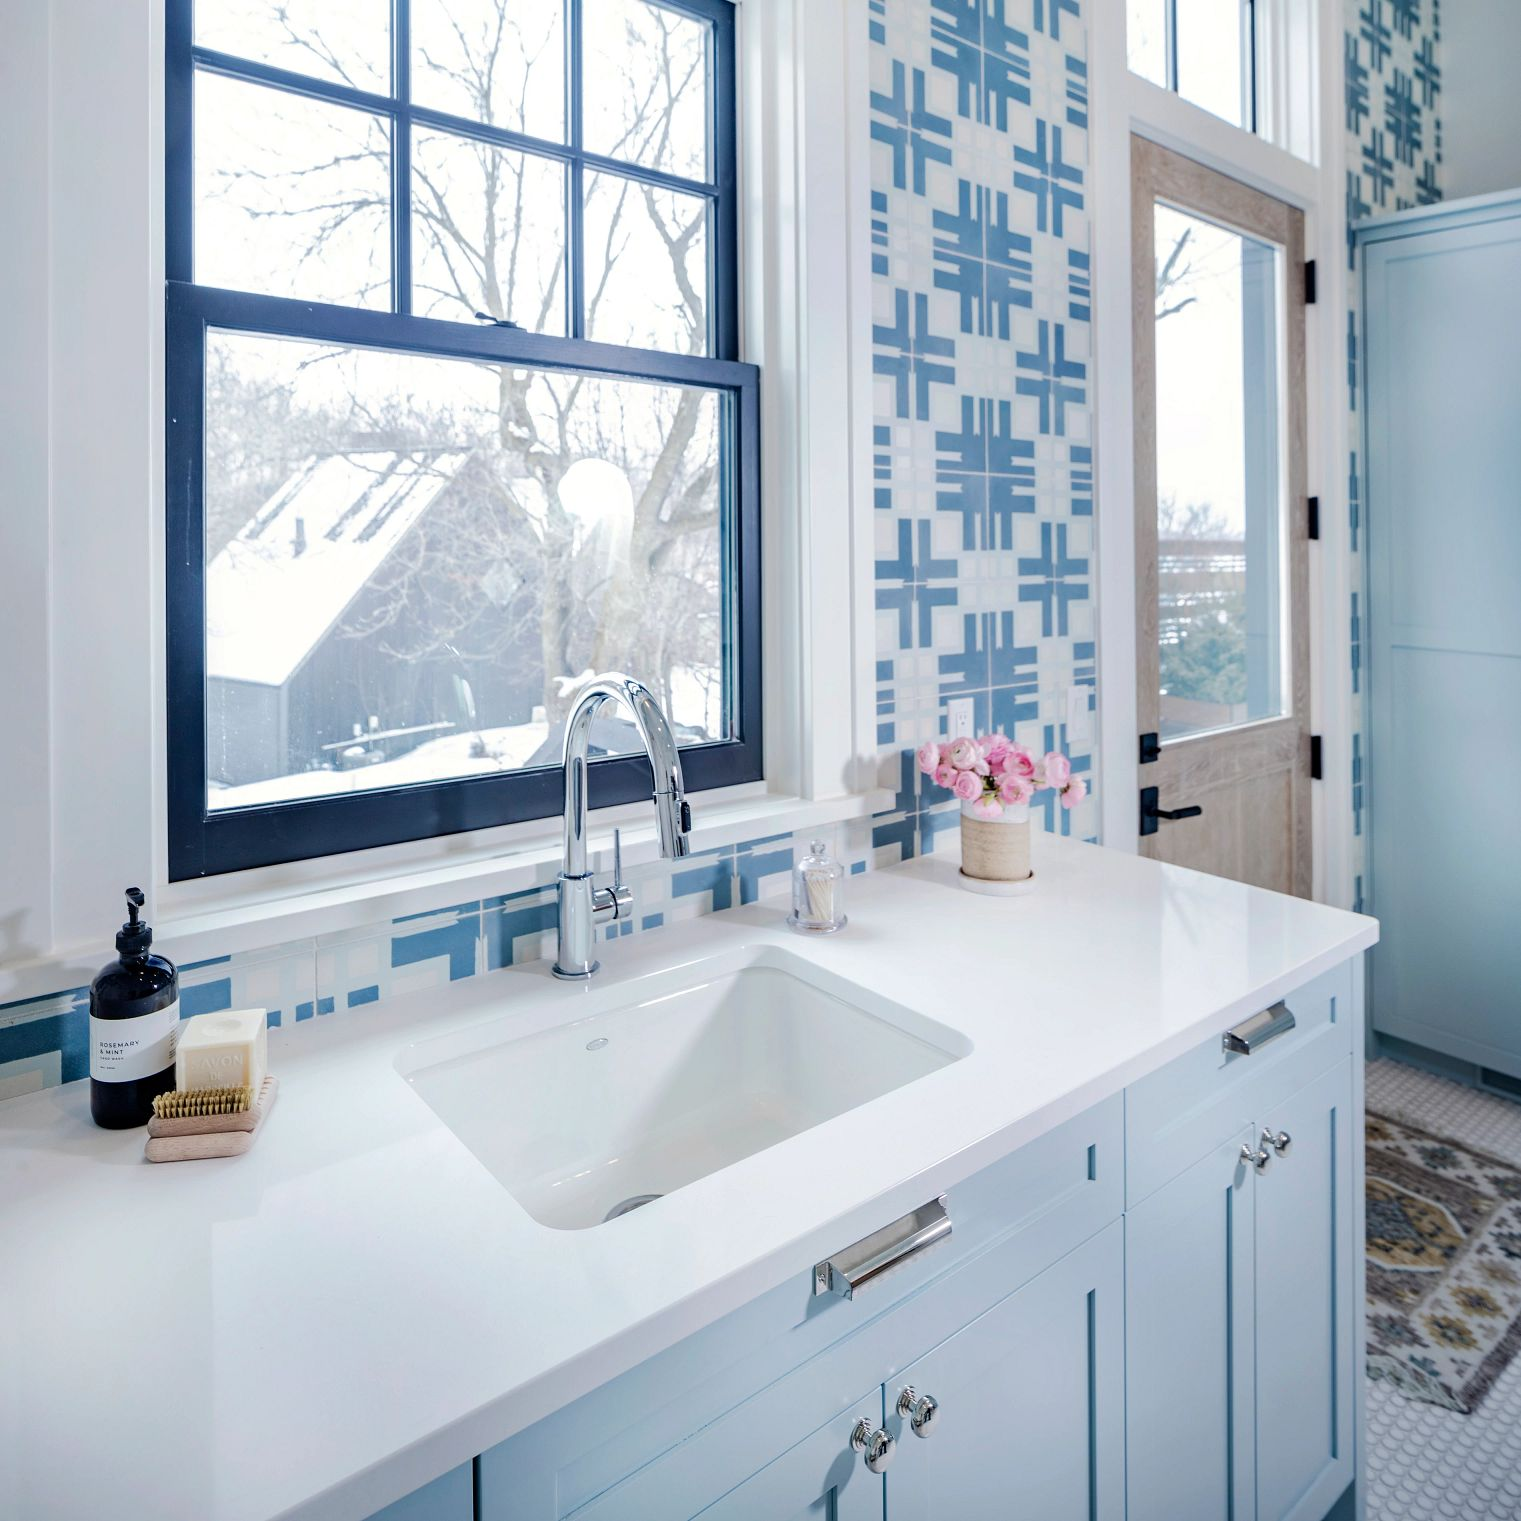 A bathroom with a sink and a window  Description automatically generated with low confidence